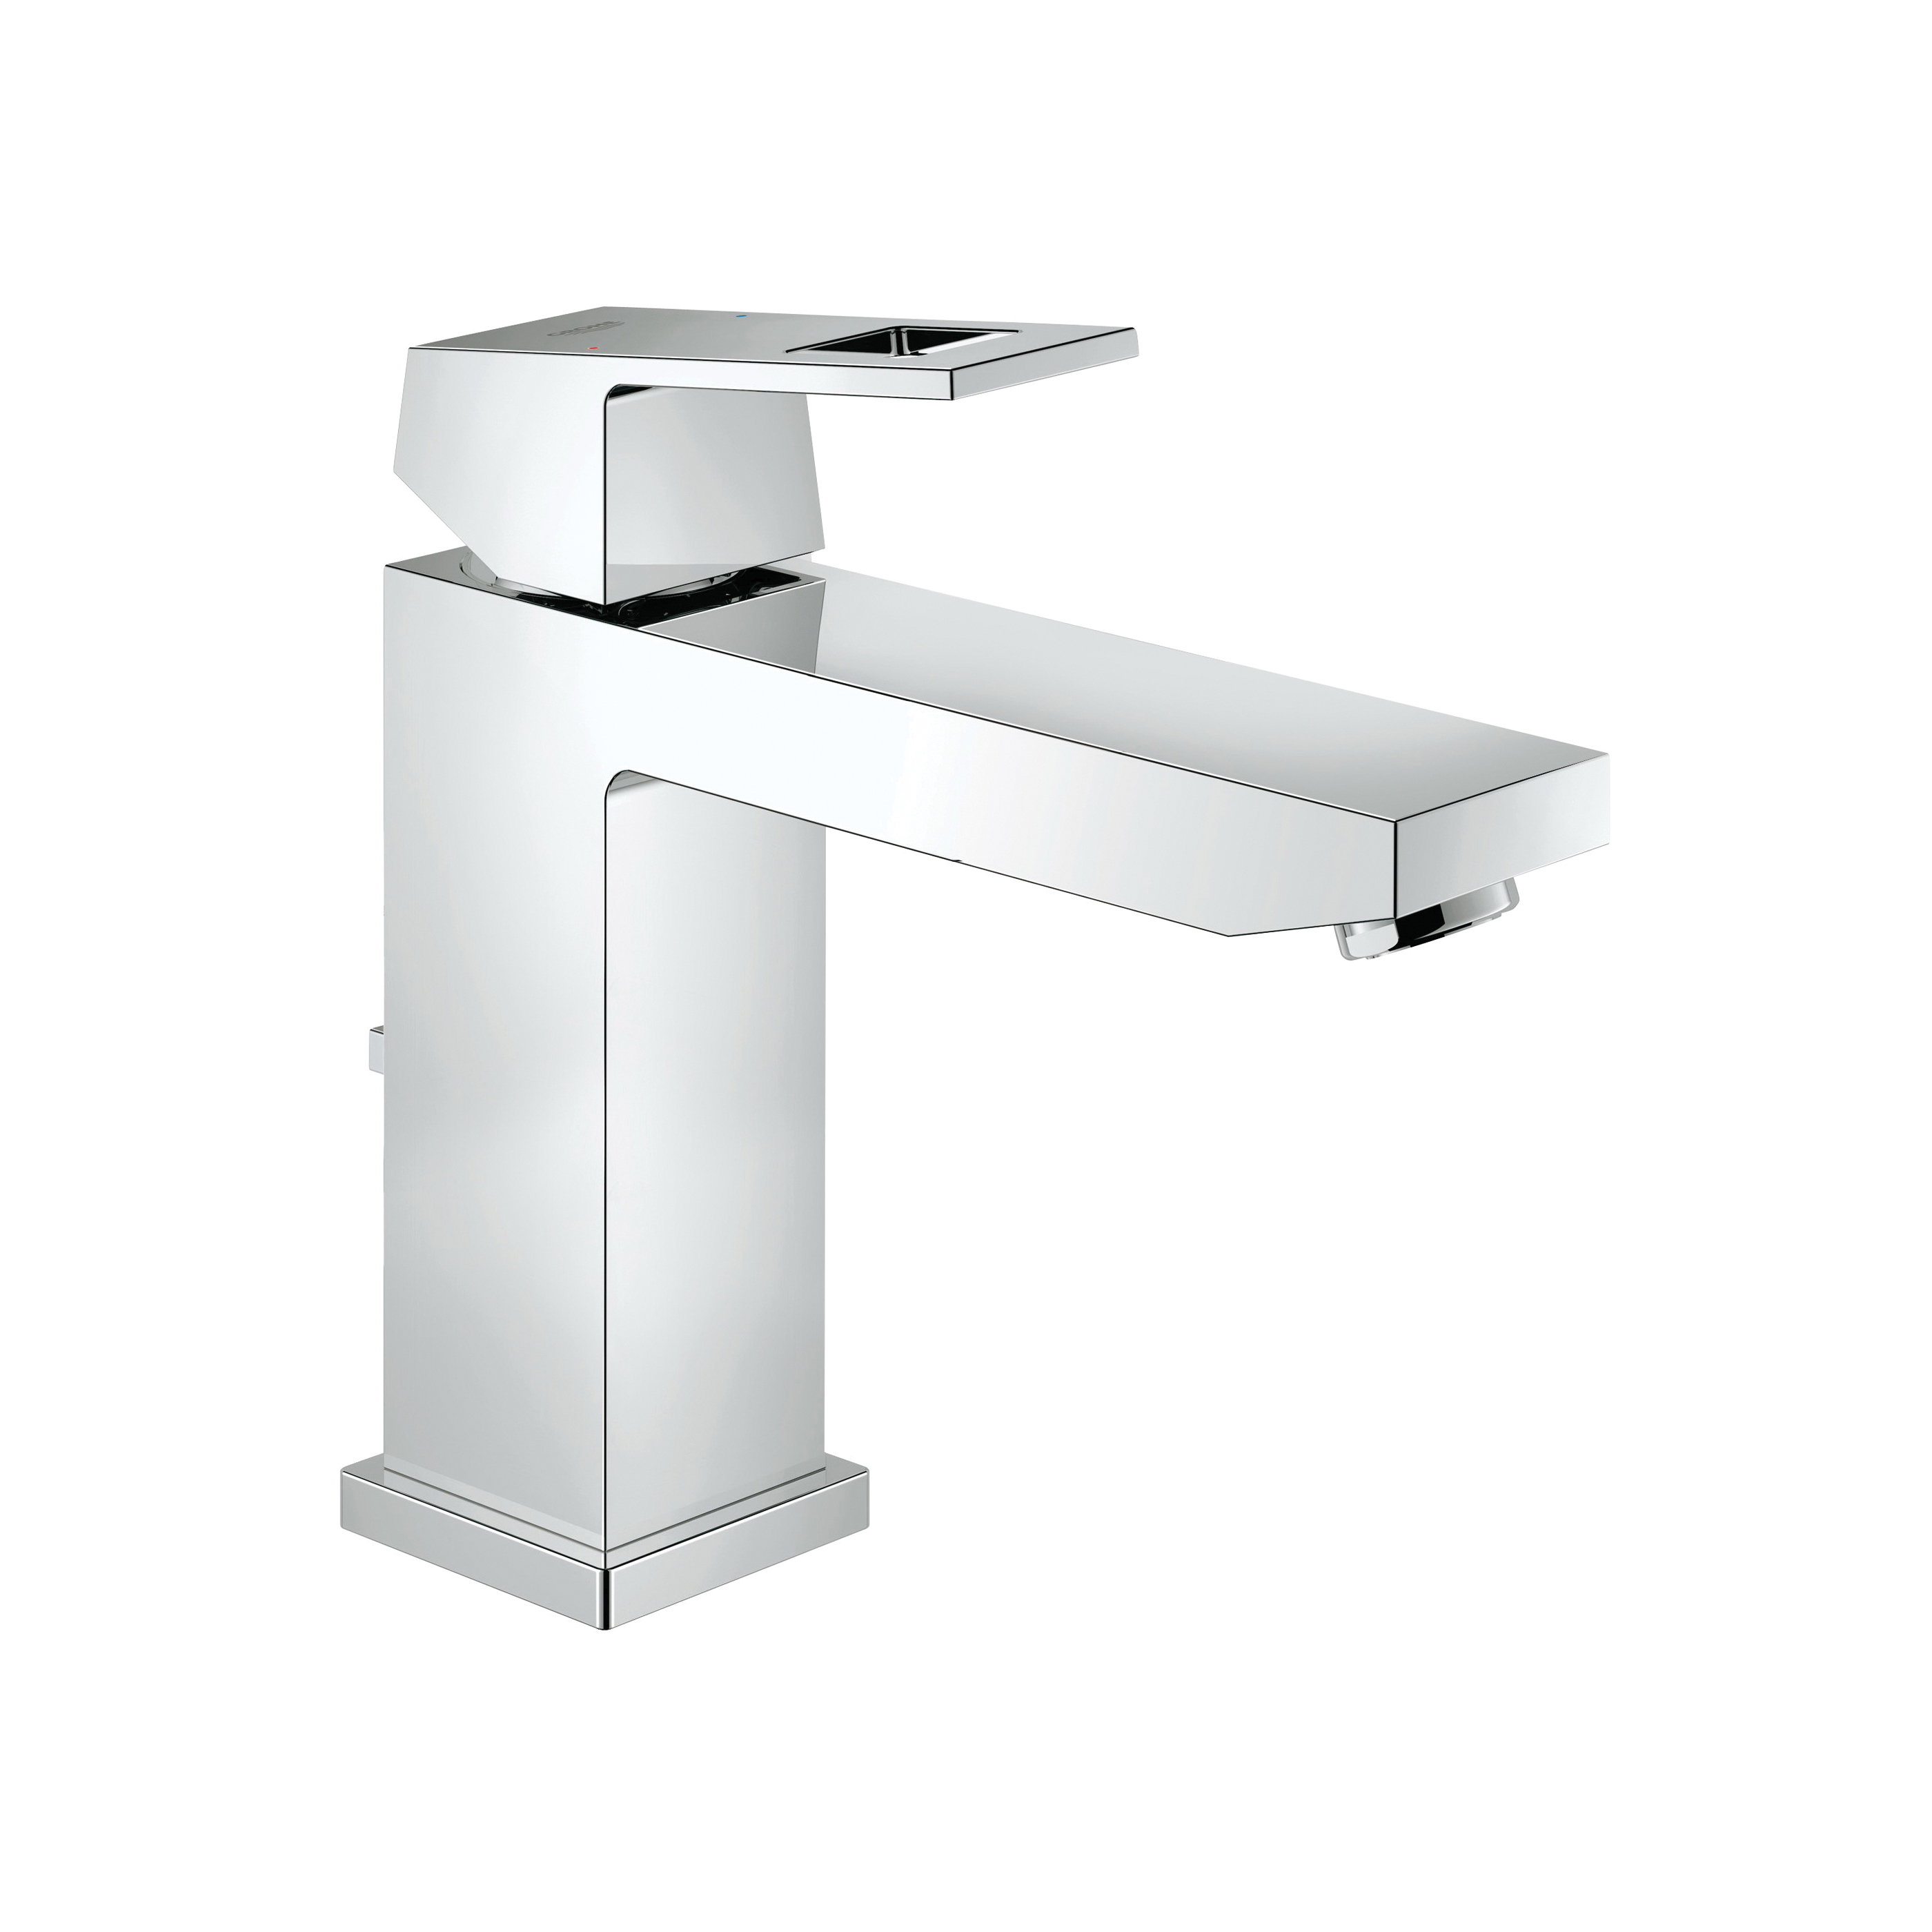 GROHE 23670000 Eurocube® Centerset Lavatory Faucet With Temperature Limiter, 1.5 gpm, 4.313 in H Spout, 1 Handle, Pop-Up Drain, 1 Faucet Hole, StarLight® Chrome, Import